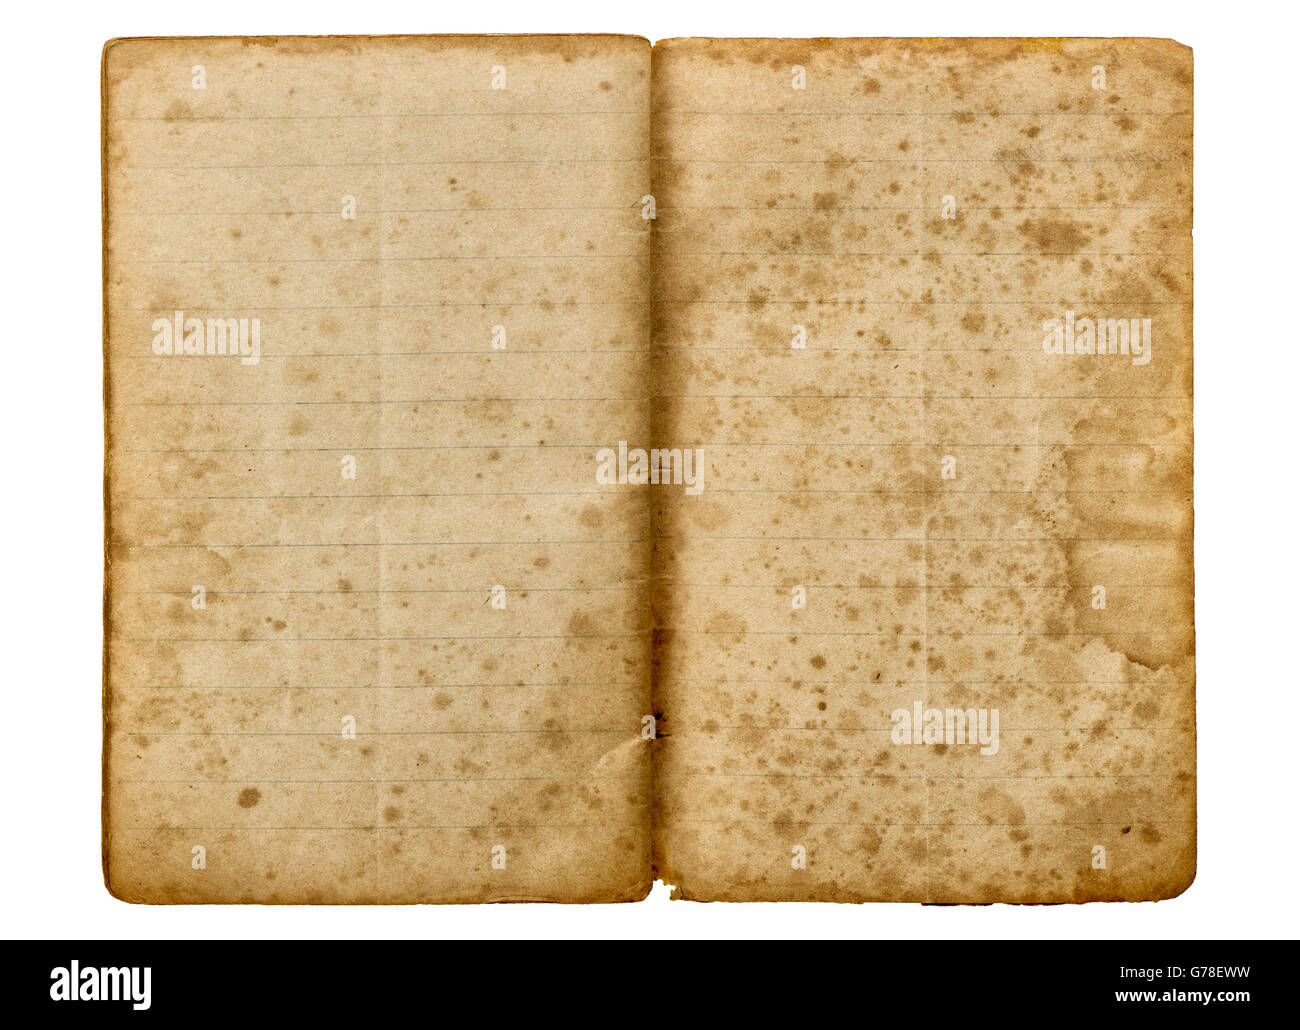 Old School Exercise Book Open Isolated On White Background Aged Paper Texture